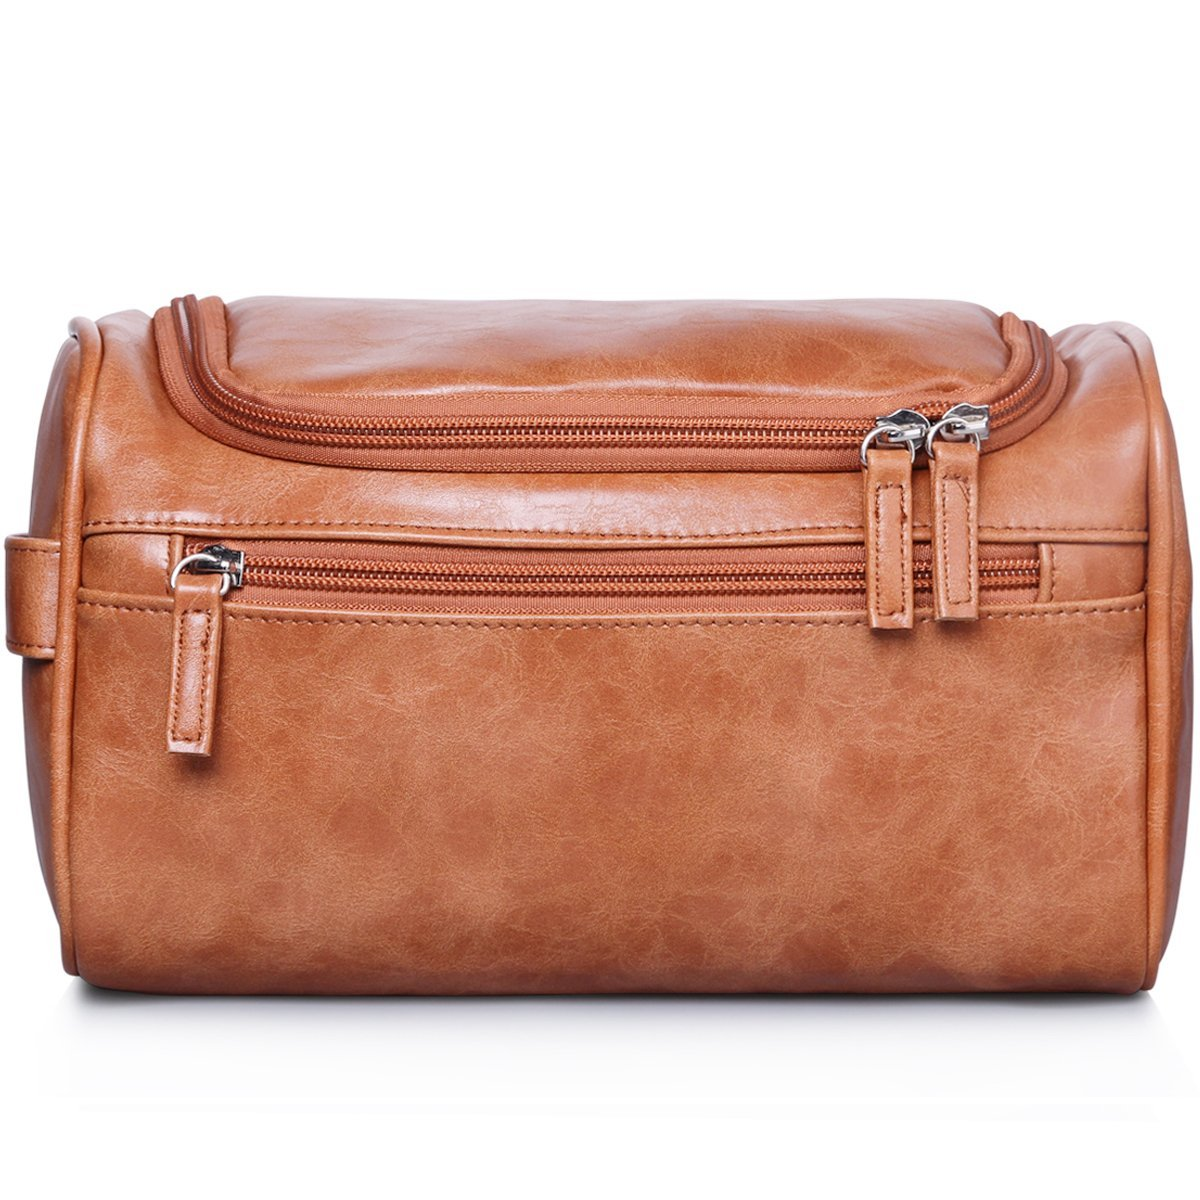 Travel Hanging Toiletry Bag for Men Waterproof Brown VA-04